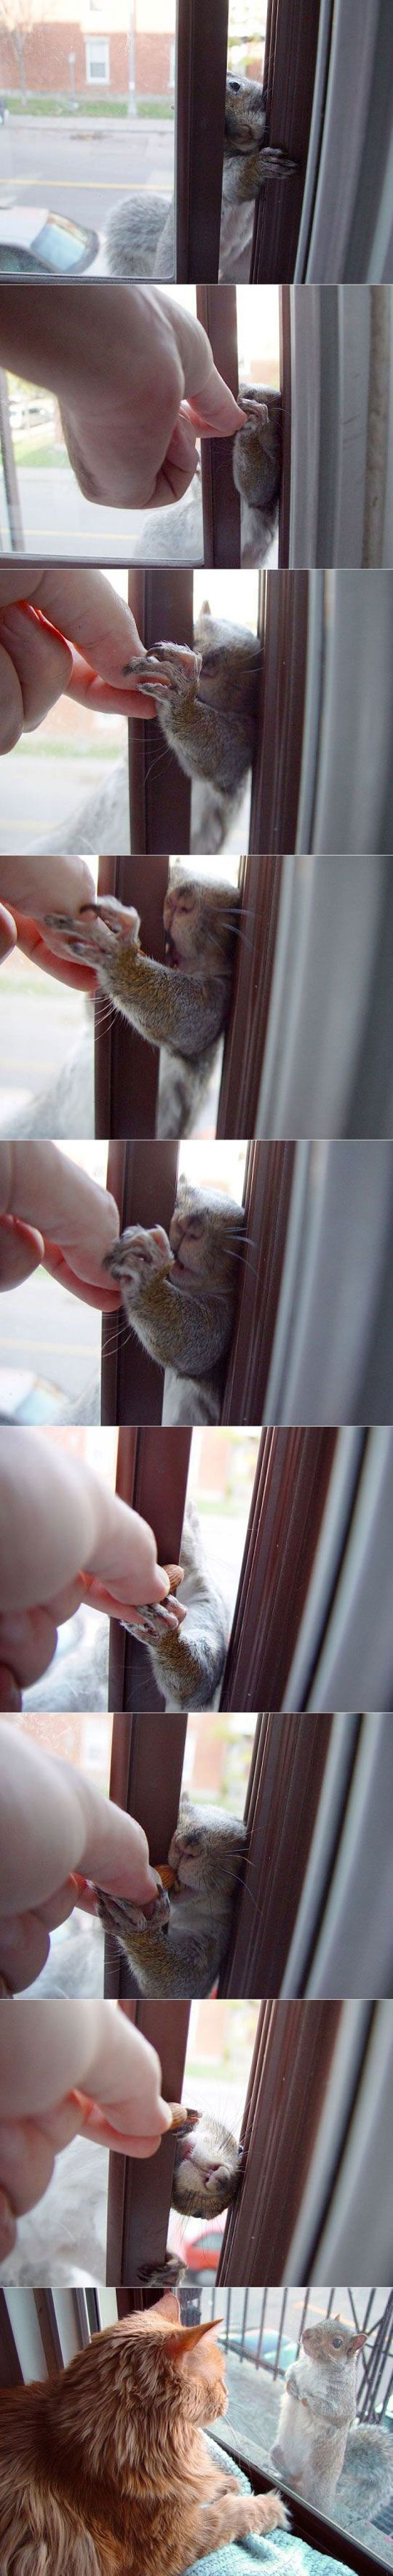 I adore the last picture.: Animals, Critter, Boo Cat, Funny Cats, Squirrels Chipmunks, Squirrel Friend, Squirrel Funny, Funny Squirrel Nuts Window